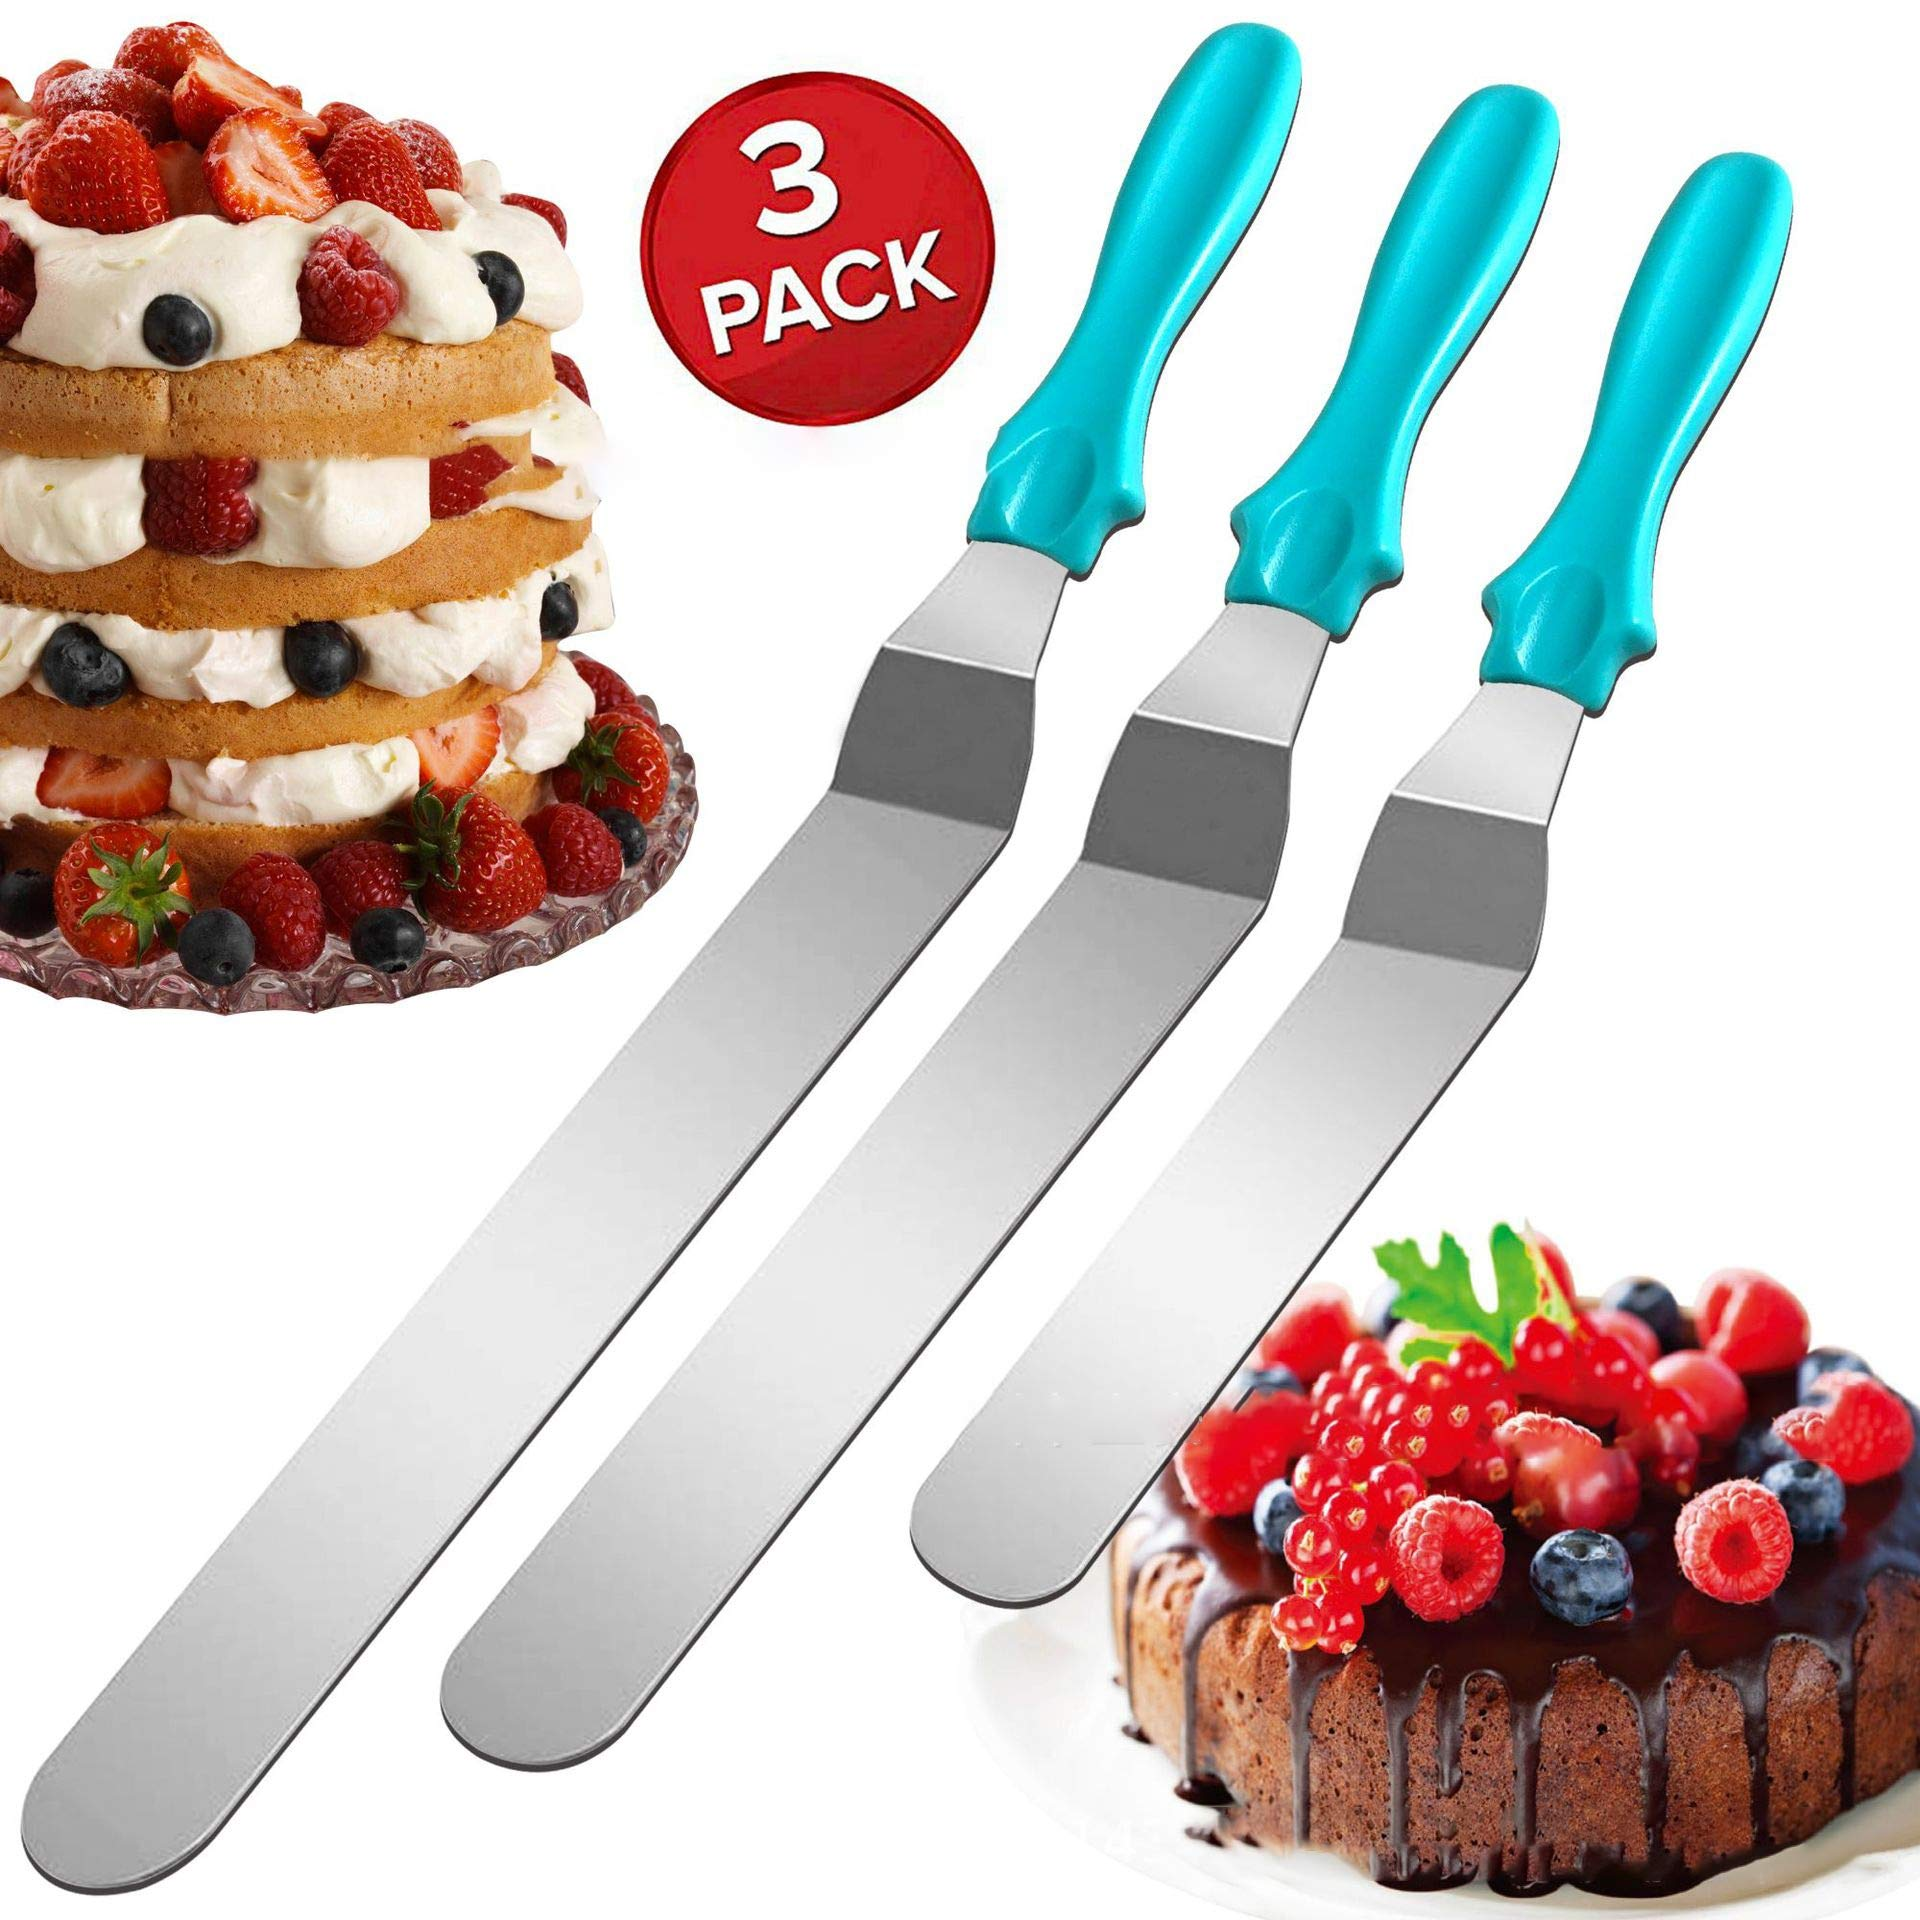 Stainless Steel Angled Icing Spatula with Polypropylene Handle, Icing Tool for Cakes Decorating, Set of 3 (8inch 10inch 11inch),Blue